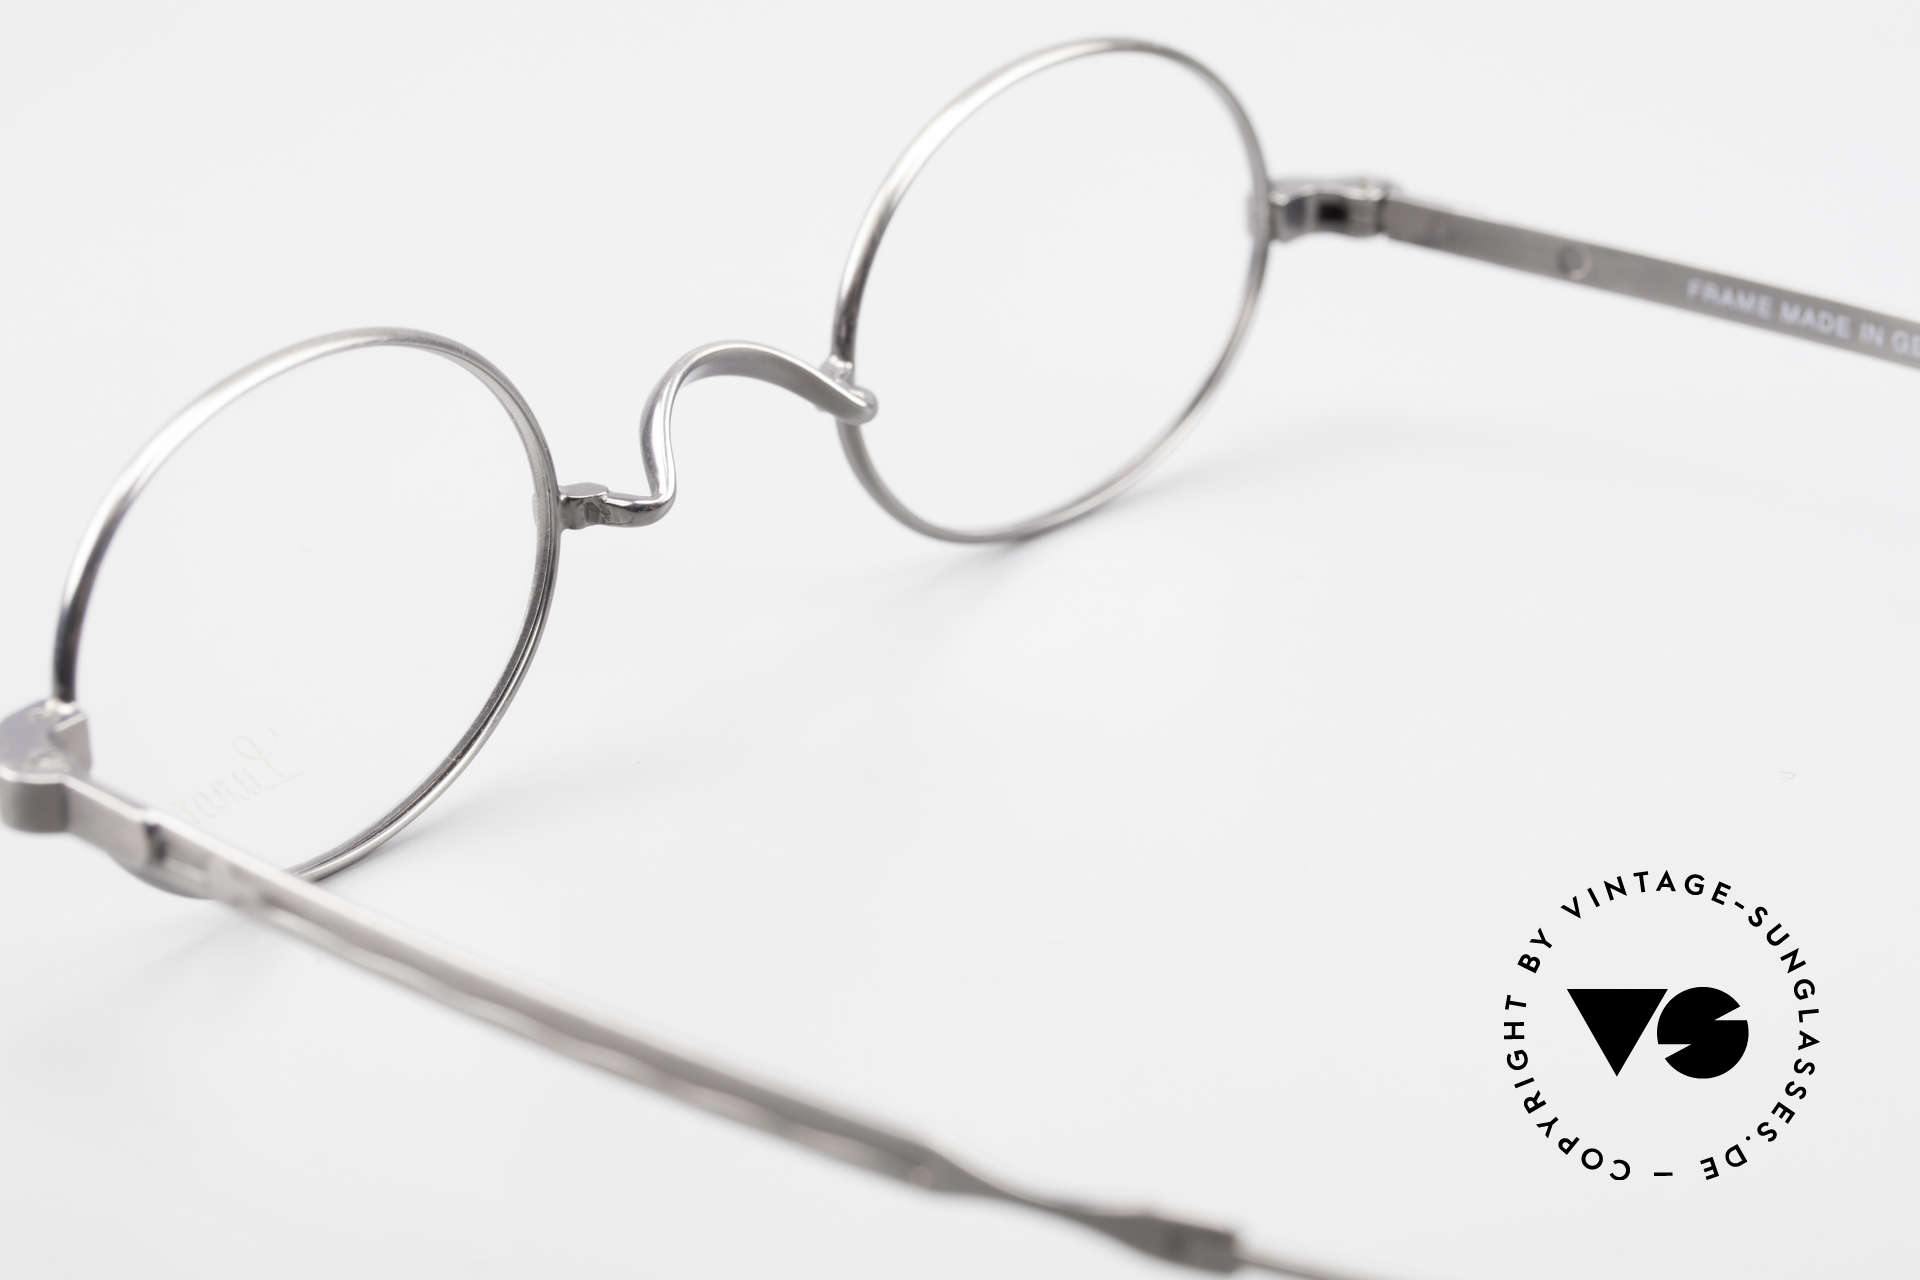 Lunor Oval T-22 Titanium Vintage Eyeglasses, NO RETRO EYEGLASSES; but a luxury vintage ORIGINAL, Made for Men and Women